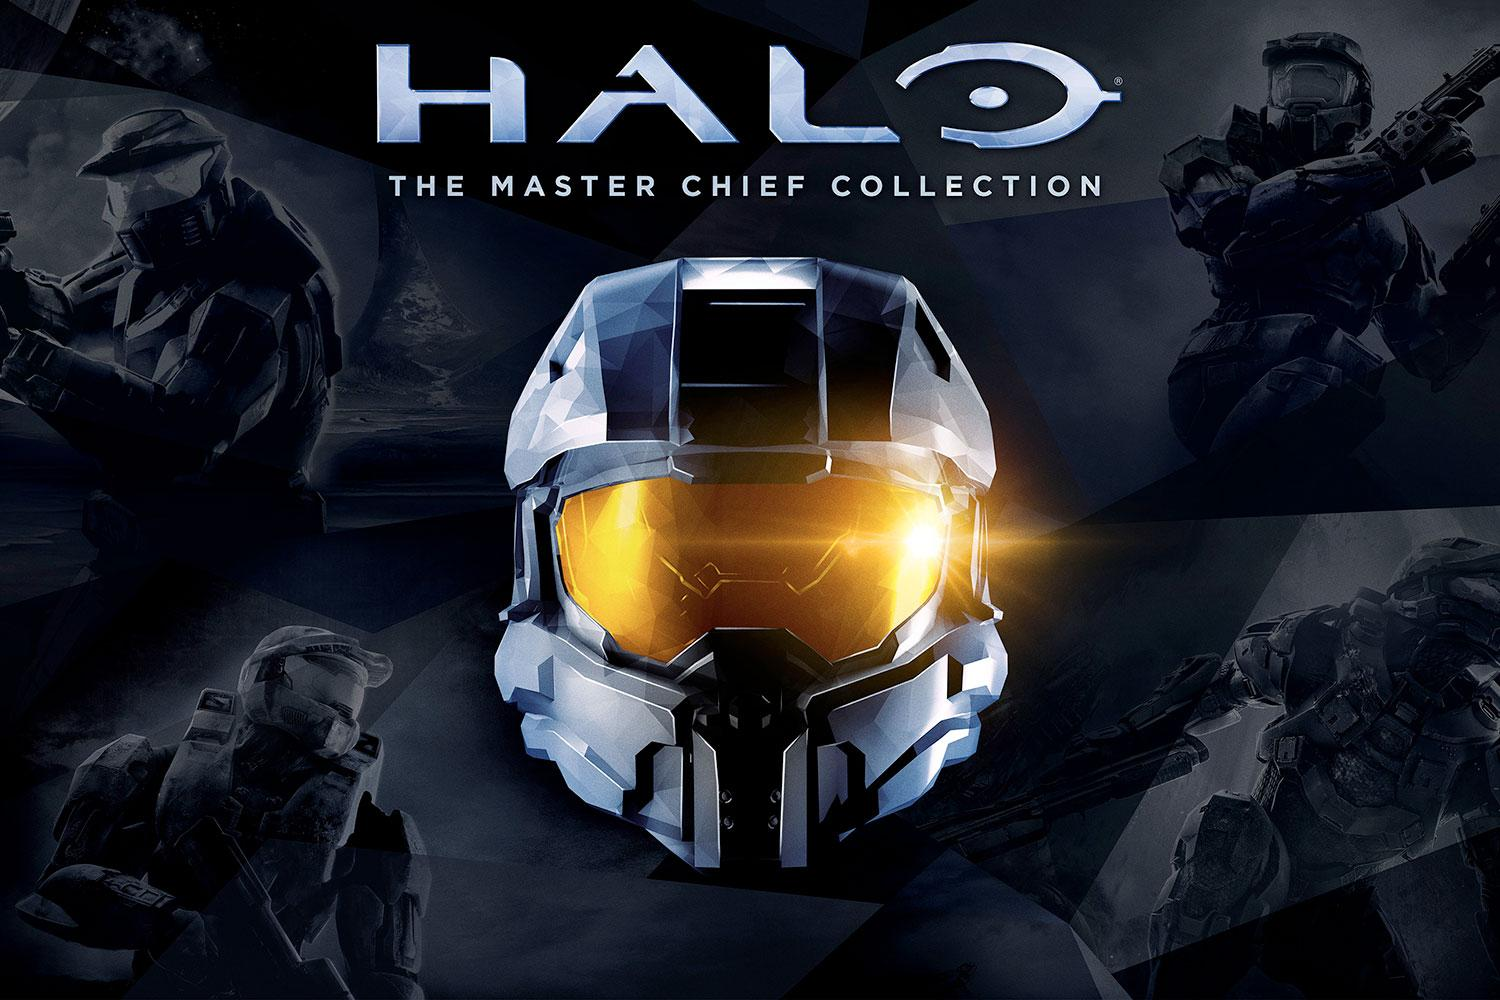 halo-the-master-chief-collection-xbox-one-1_mw8z